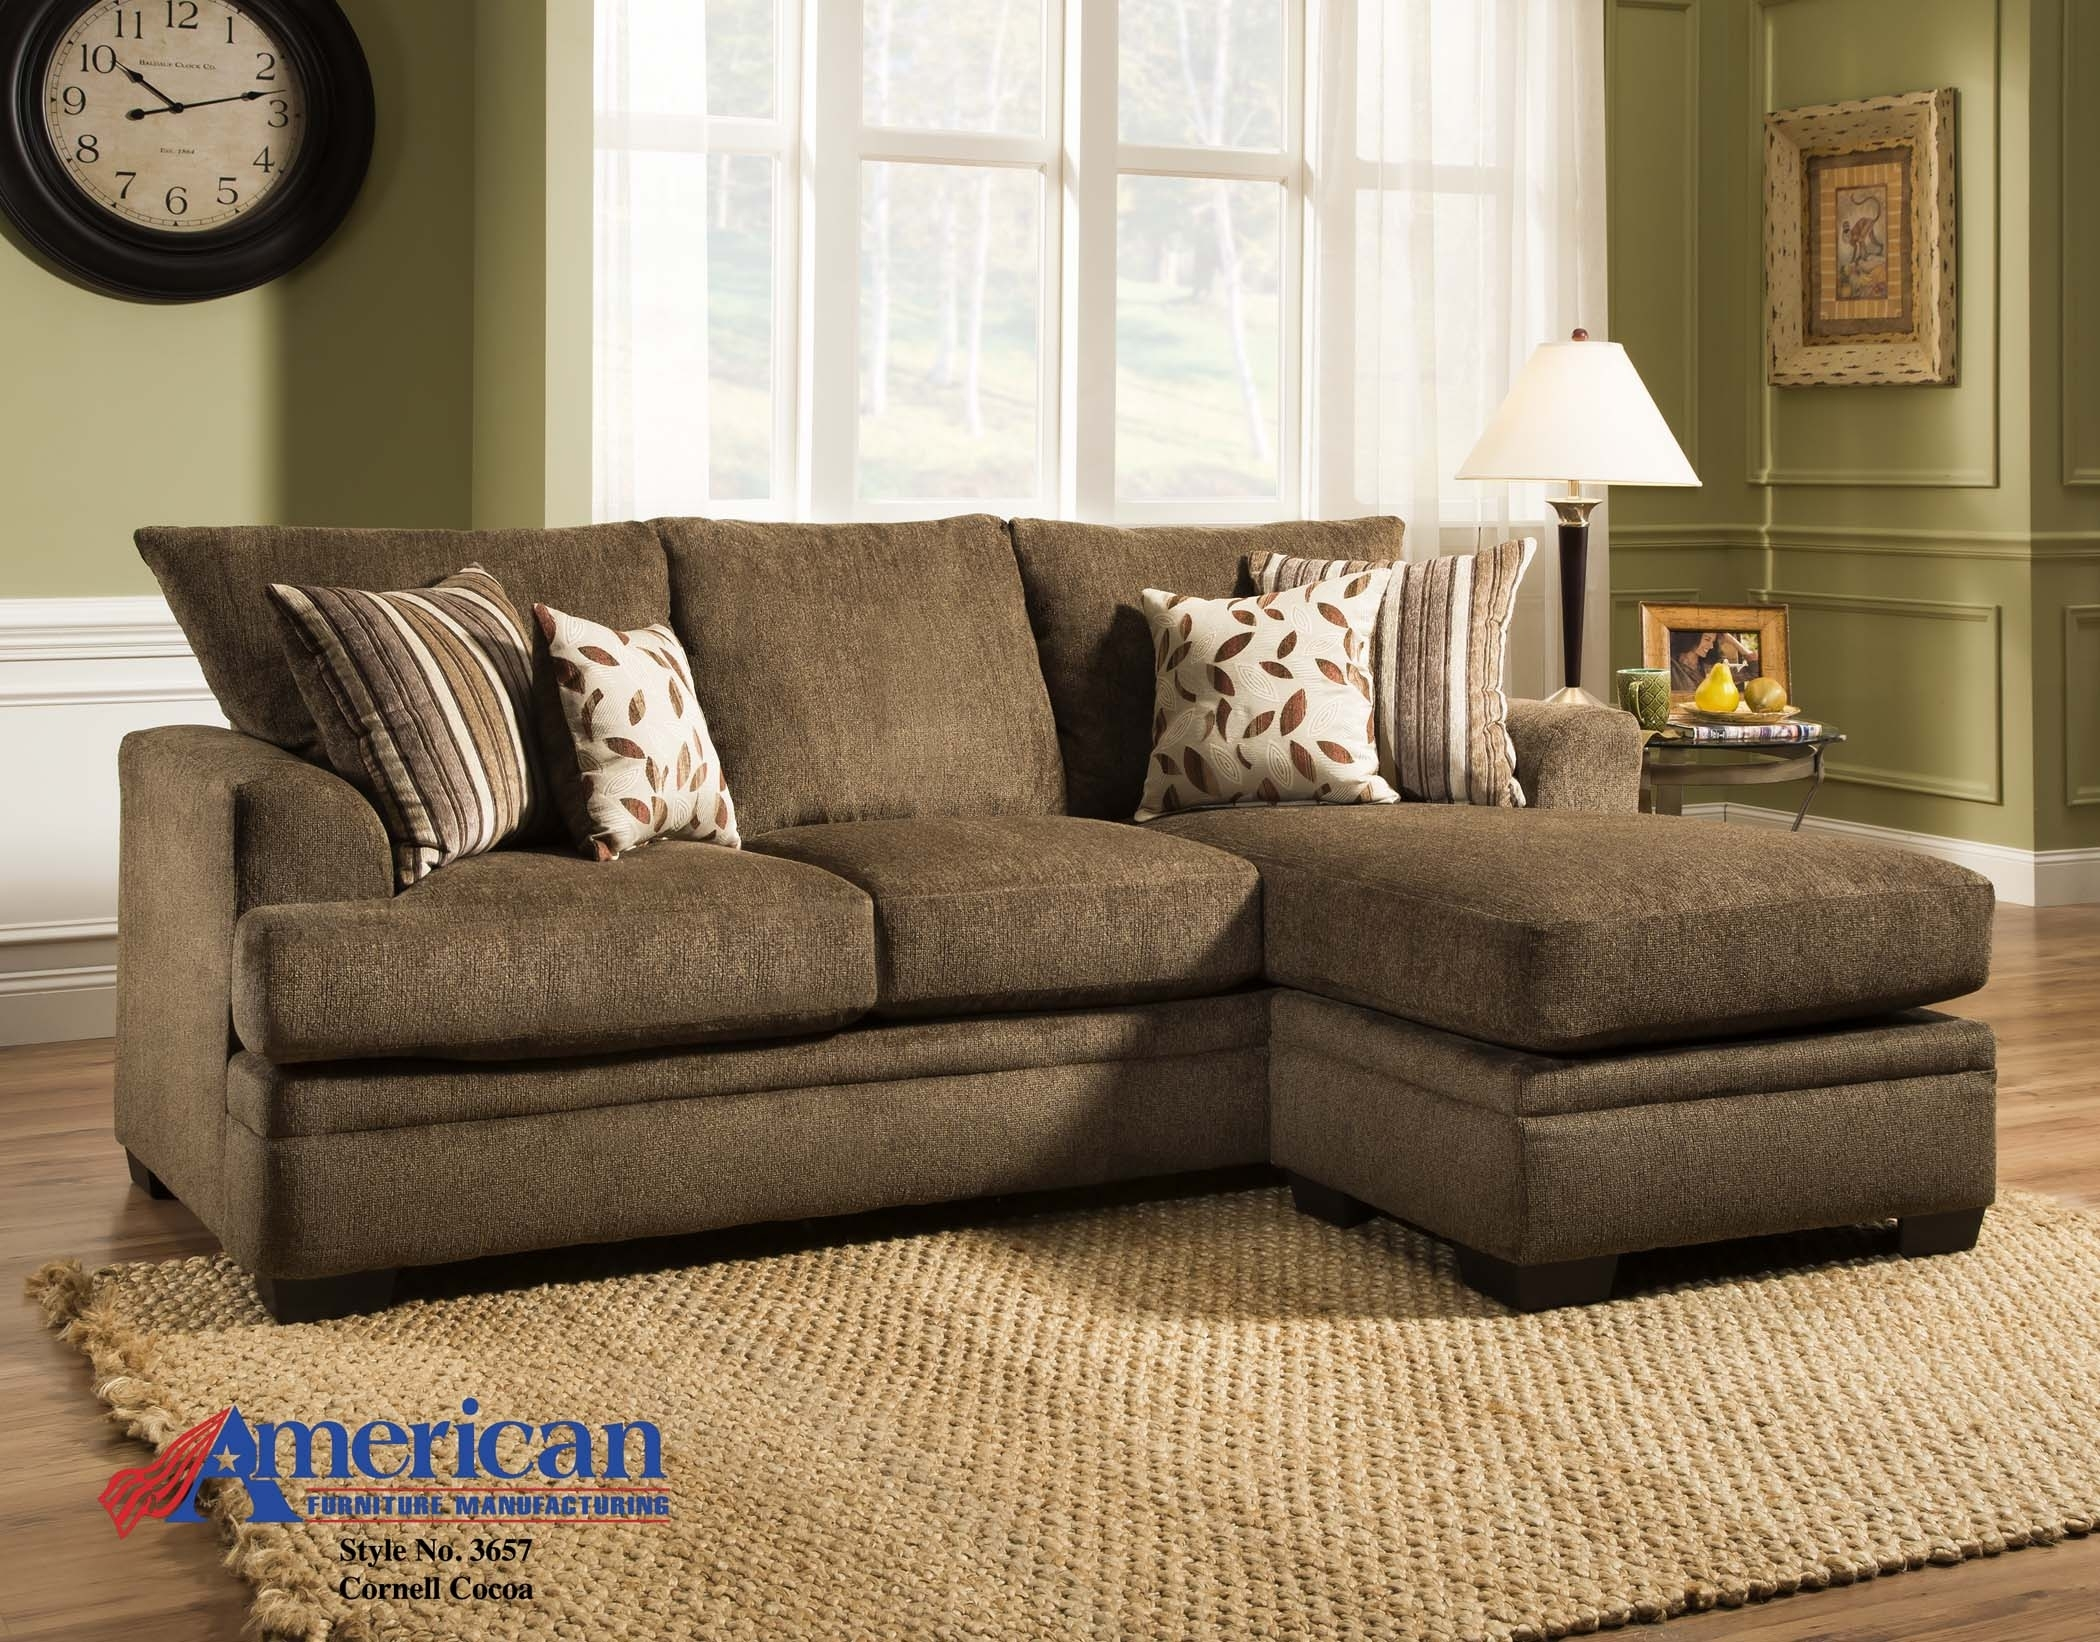 Living Room – Crazy Joe's Best Deal Furniture Intended For Janesville Wi Sectional Sofas (View 6 of 10)